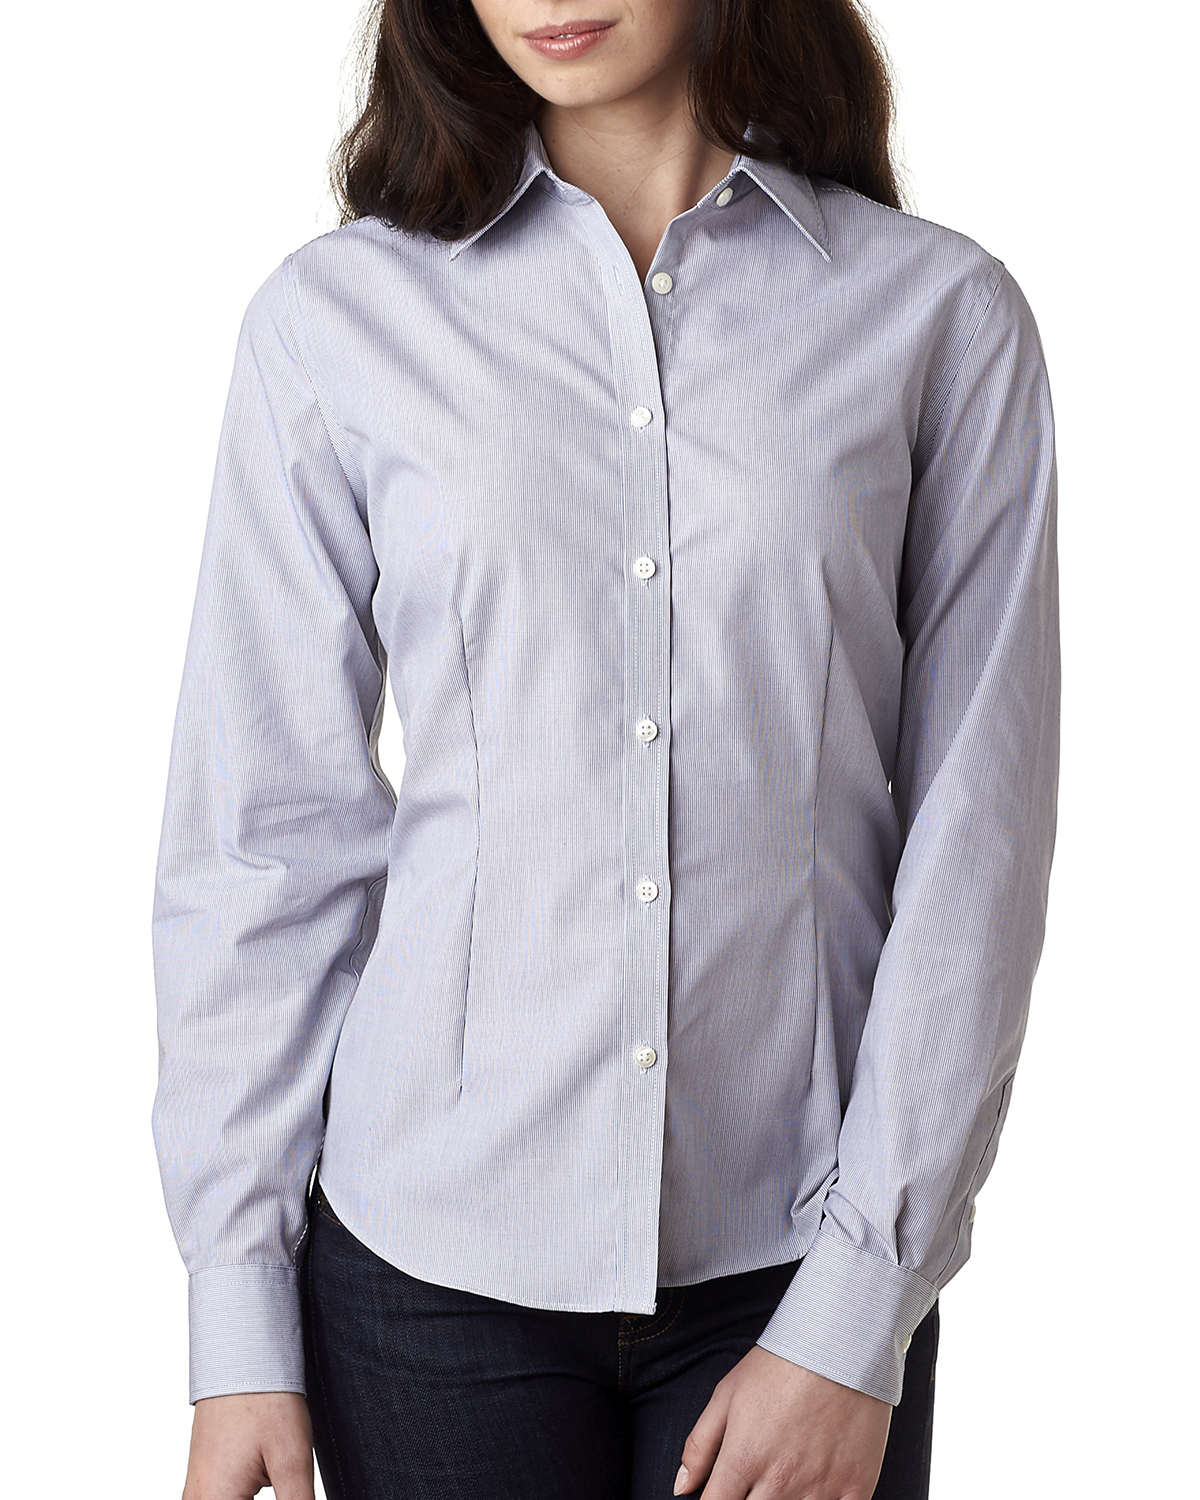 Van Heusen V0421 - Ladies' Long-Sleeve Non-Iron Feather Stripe